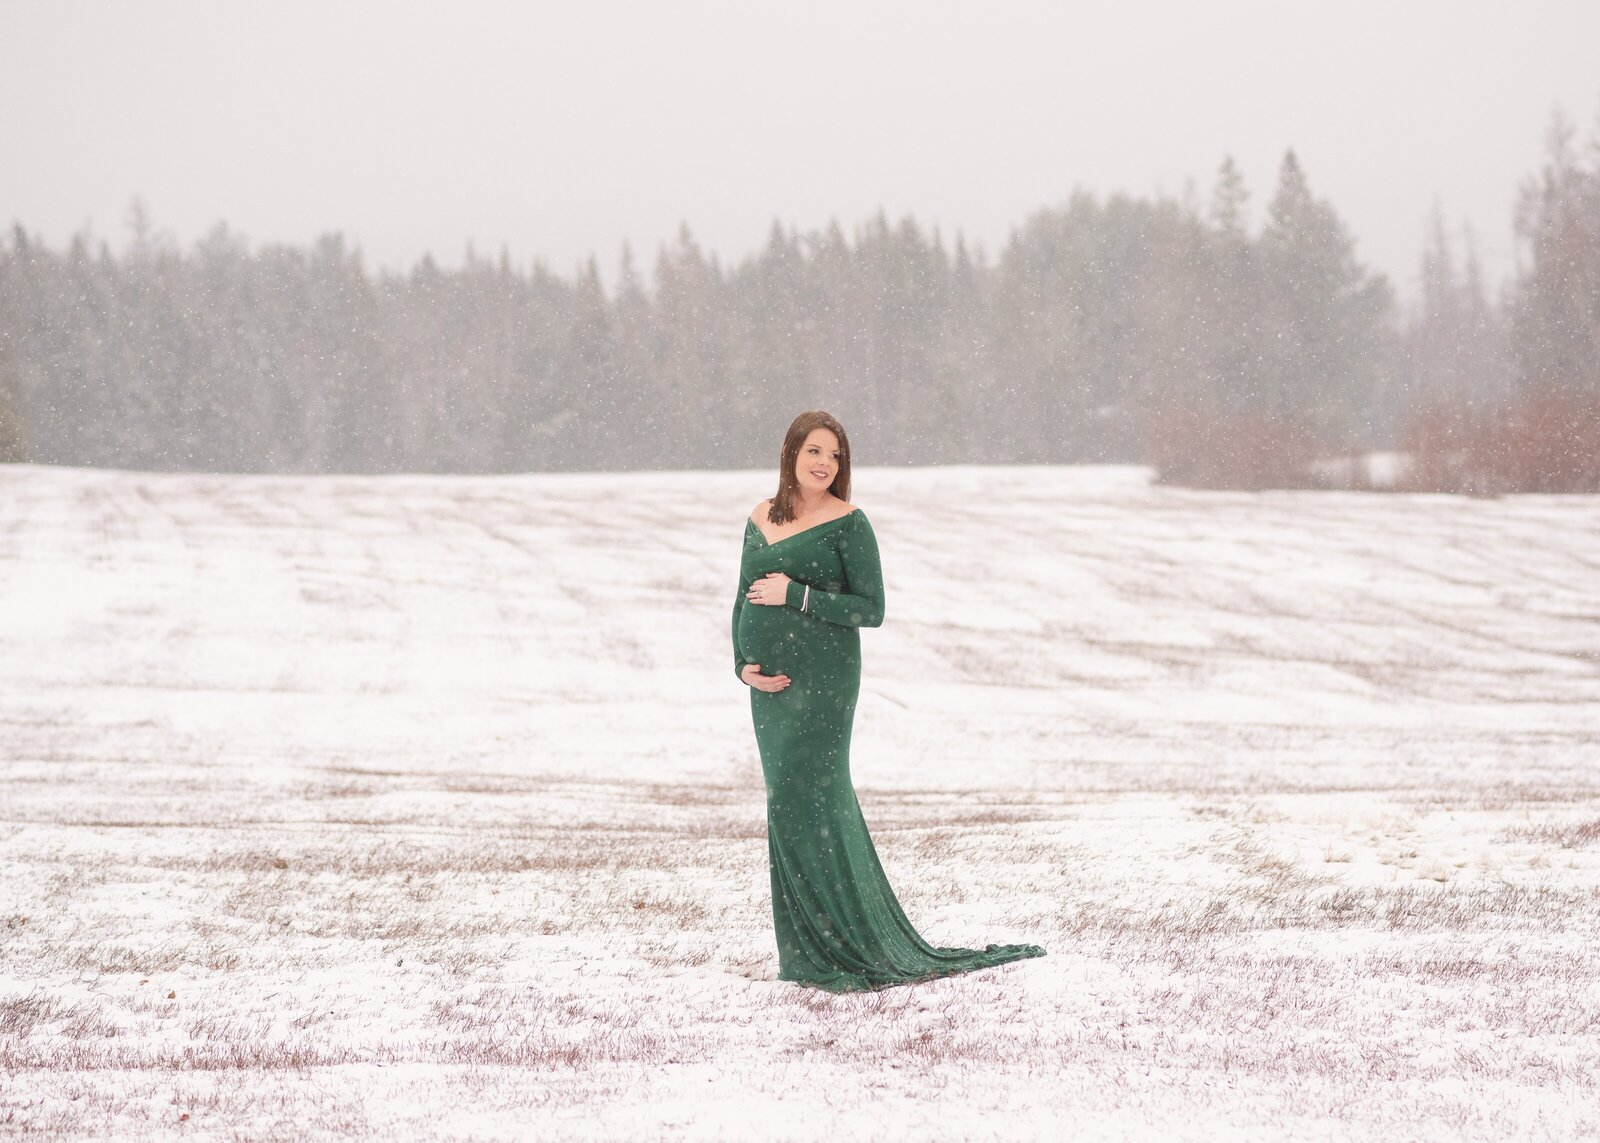 winter maternity session of a woman wearing a green gown in a snowing field